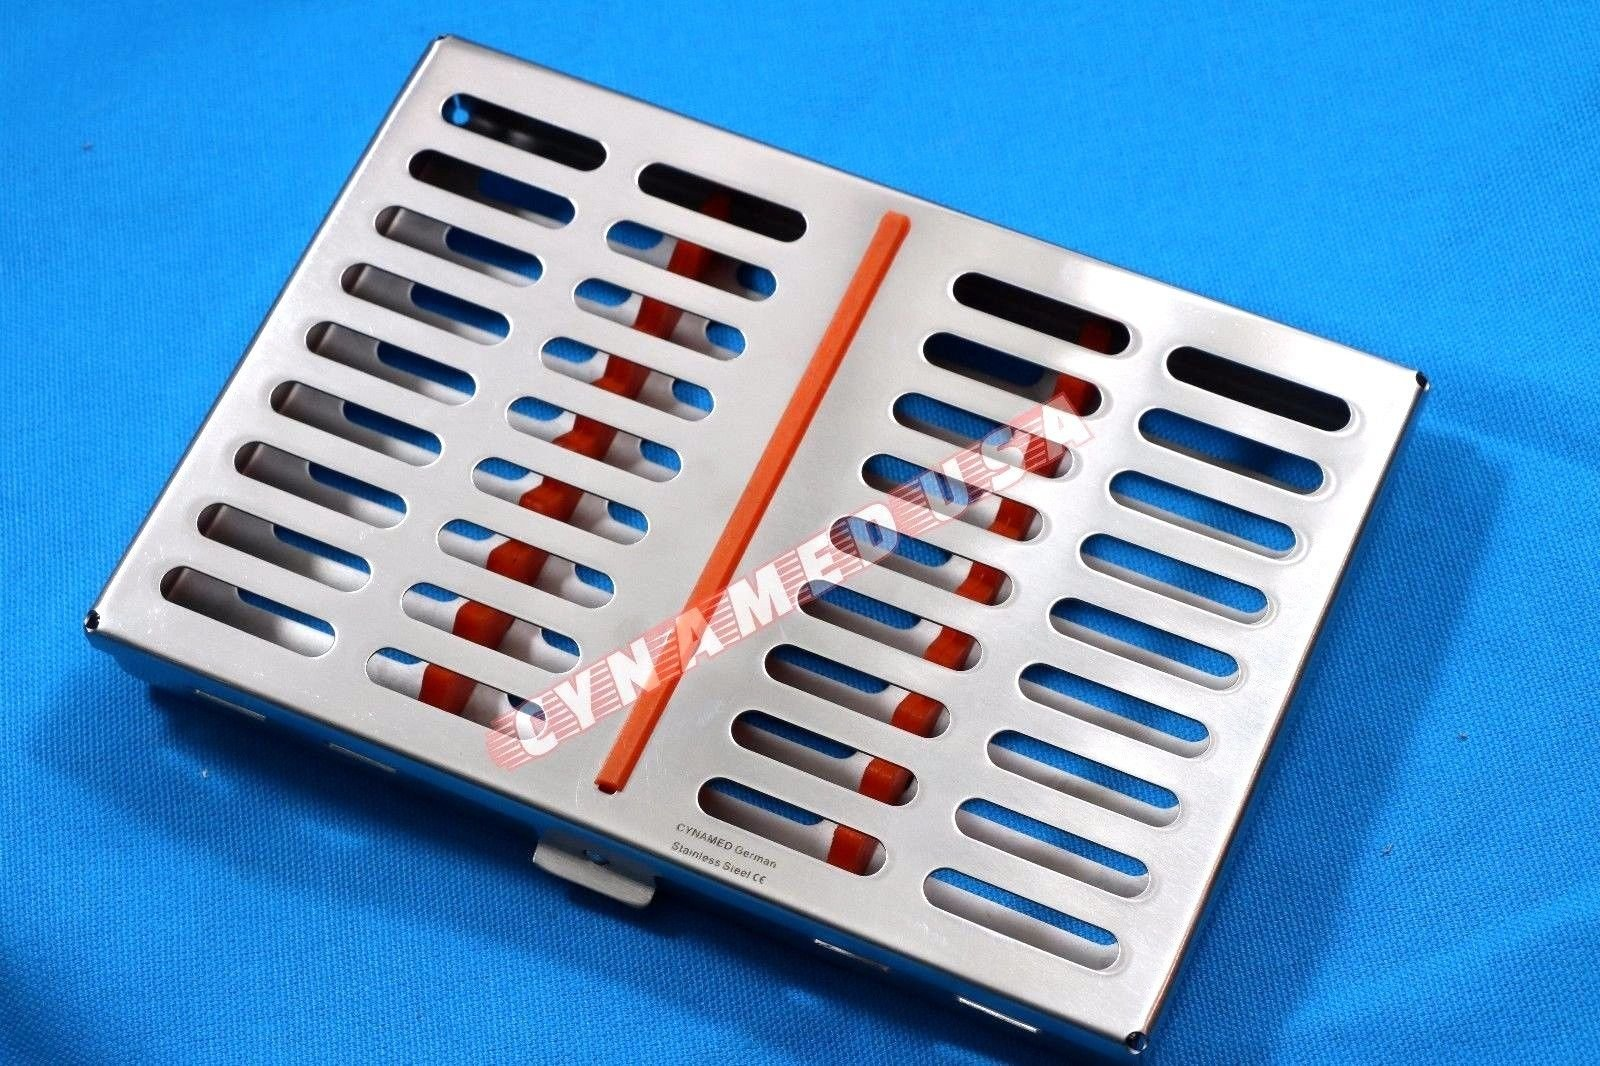 1 GERMAN STAINLESS DENTAL AUTOCLAVE STERILIZATION CASSETTE RACK BOX TRAY FOR 10 INSTRUMENTS